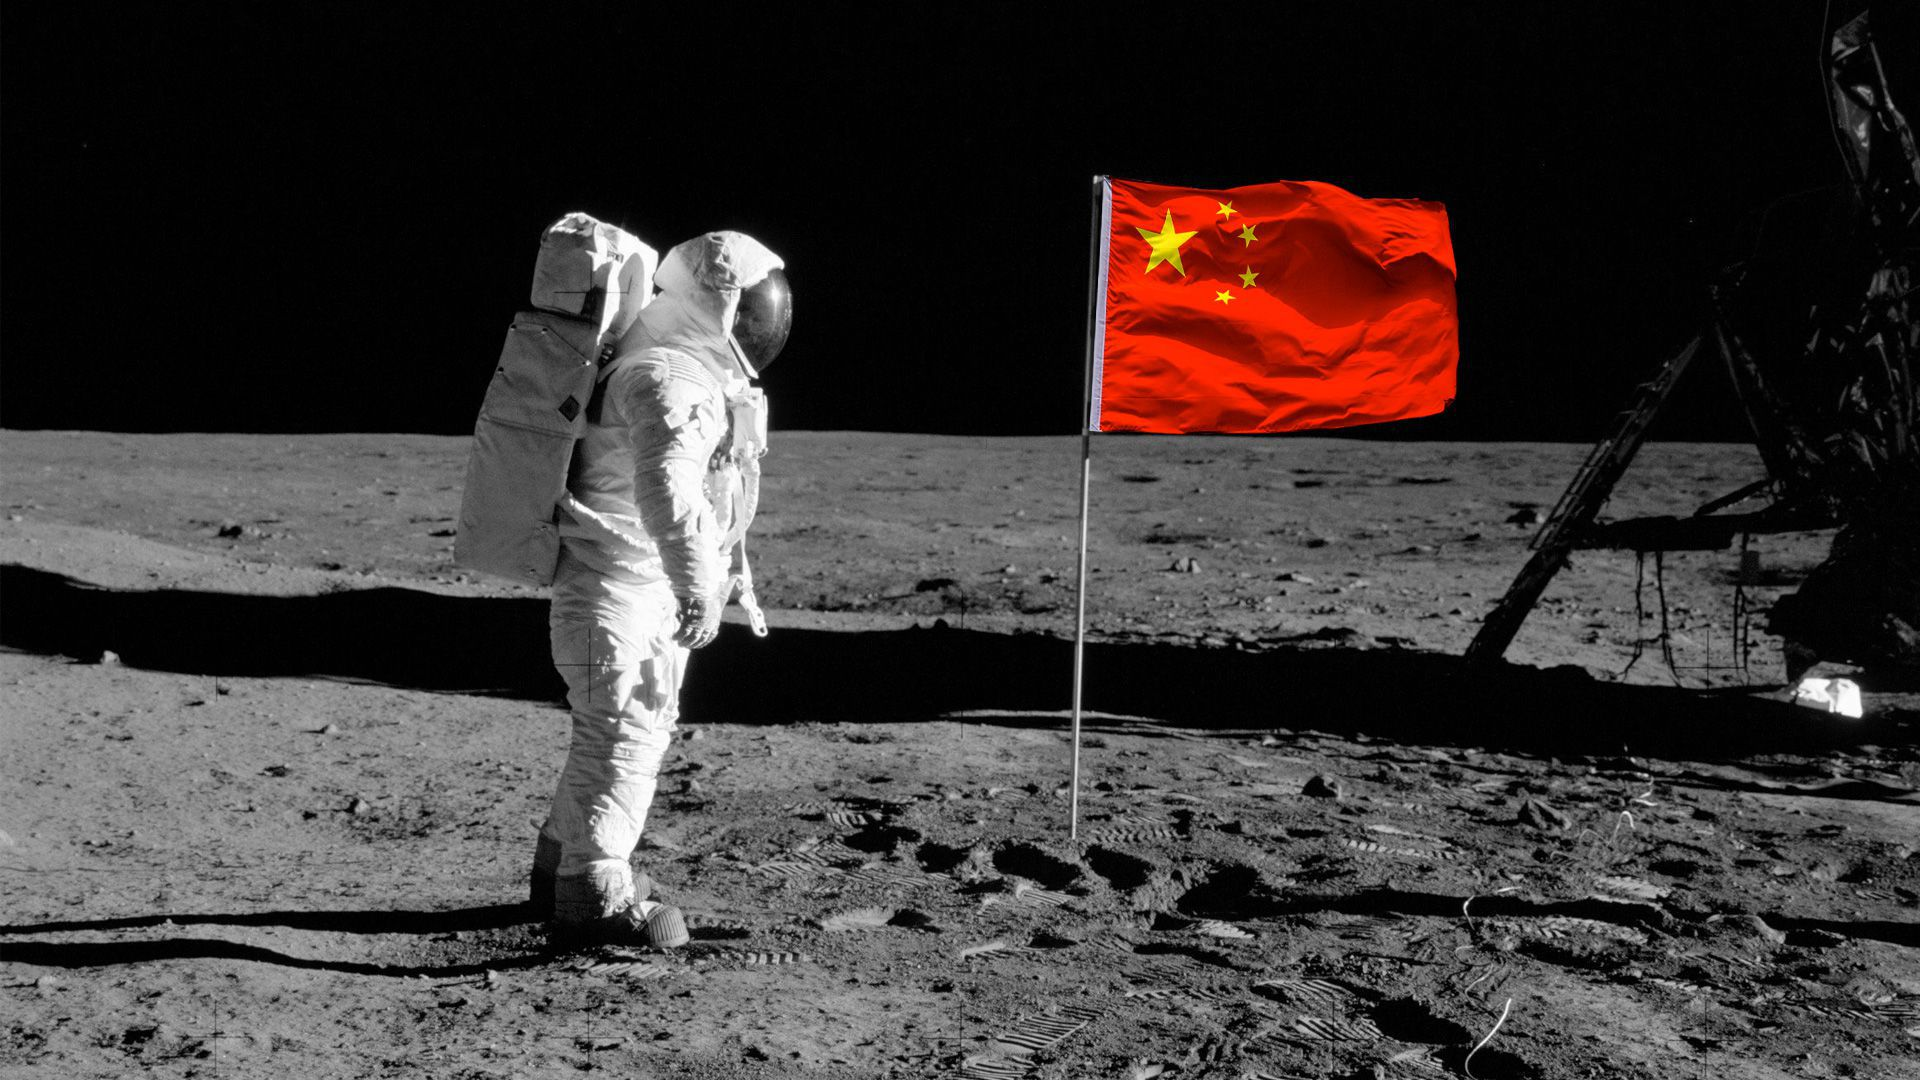 Illustration of astronaut on the moon with China flag